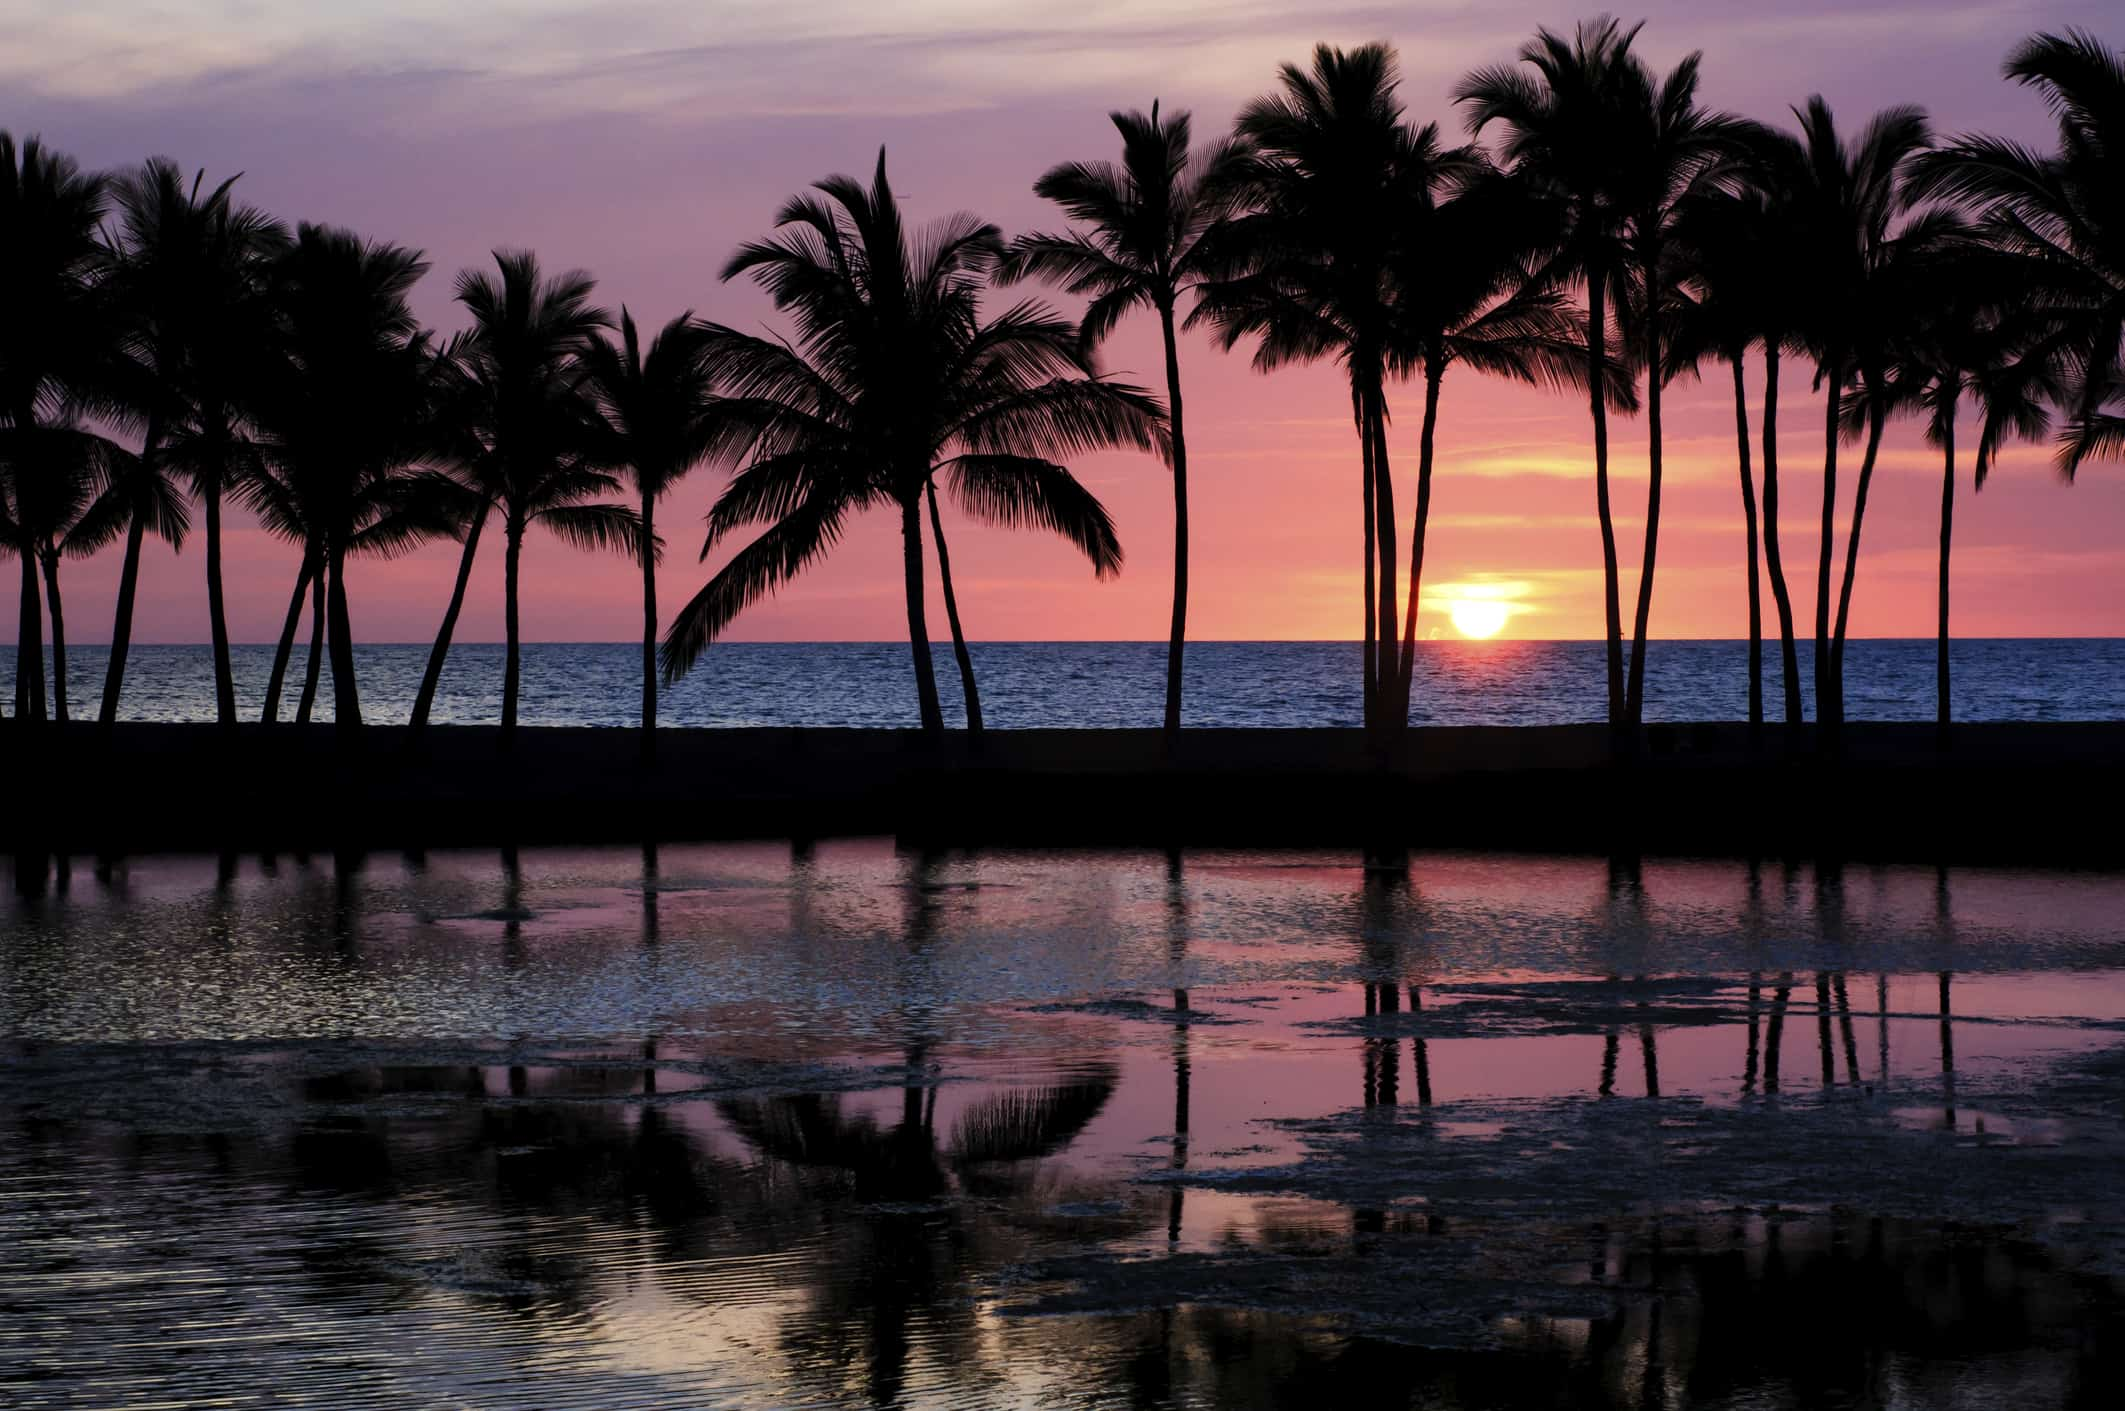 A row of palm trees in front of a sunset.